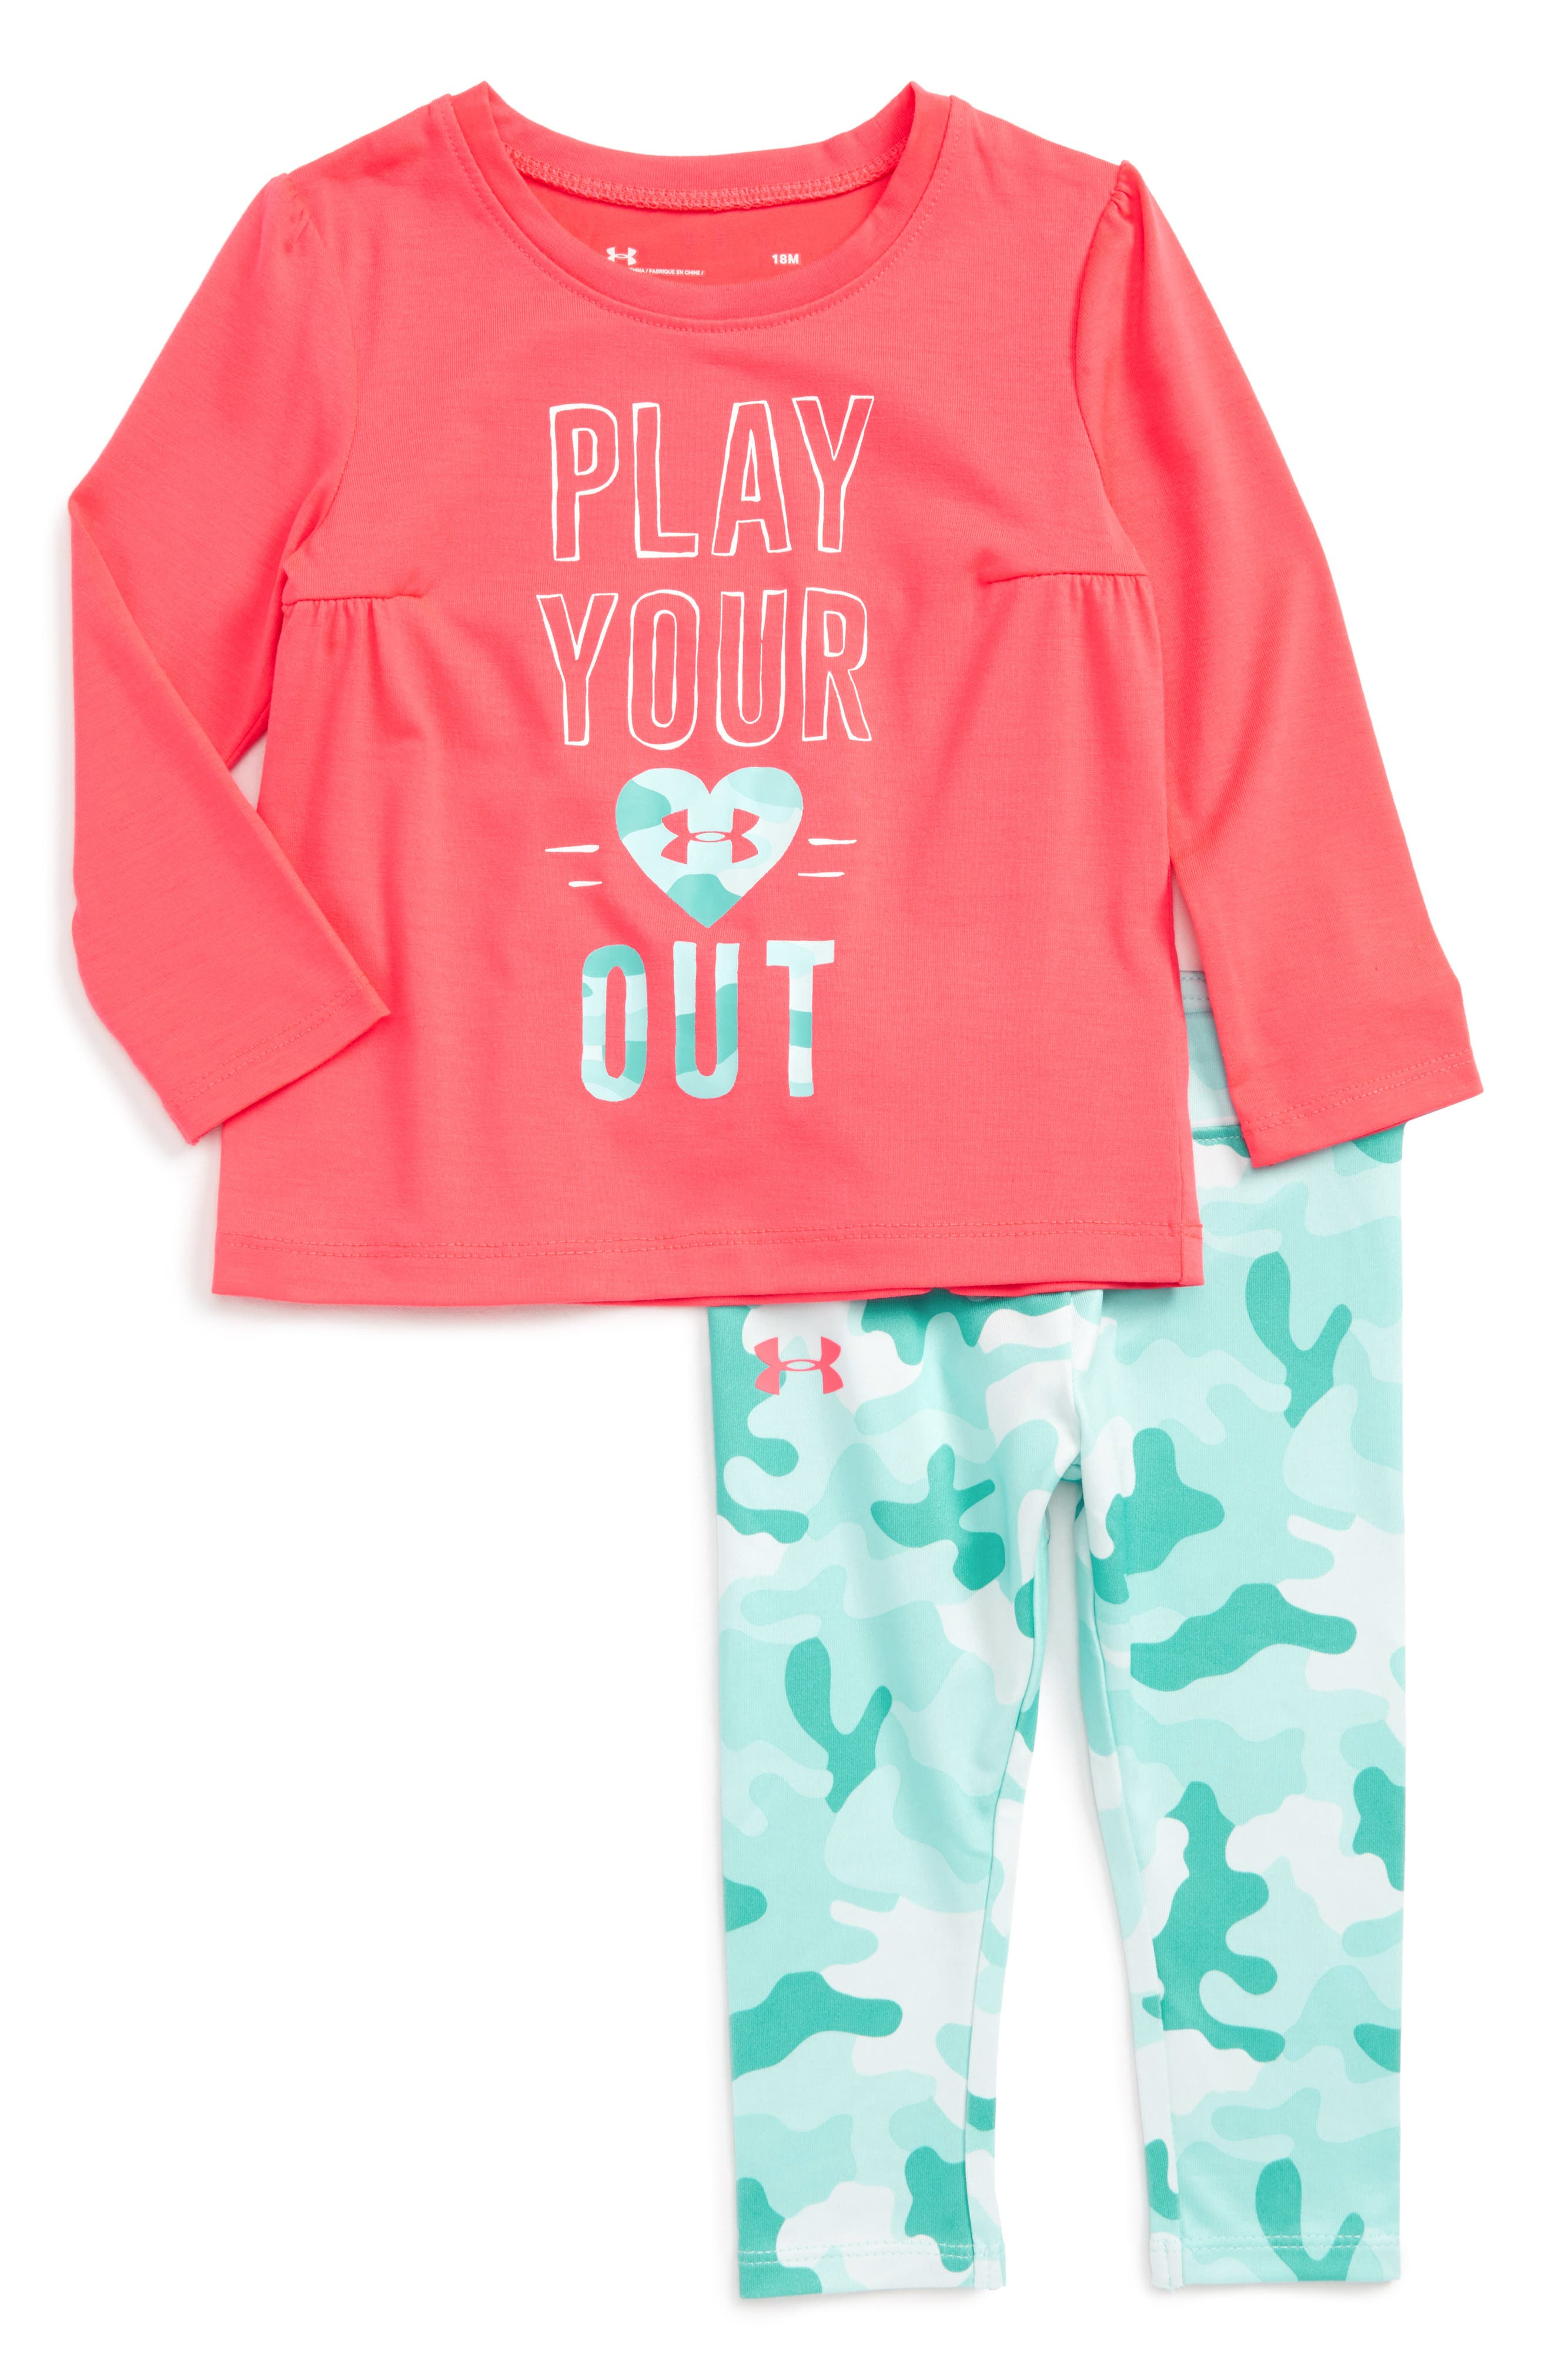 Under Armour Play Your Heart Out Tee & Leggings Set (Baby Girls)